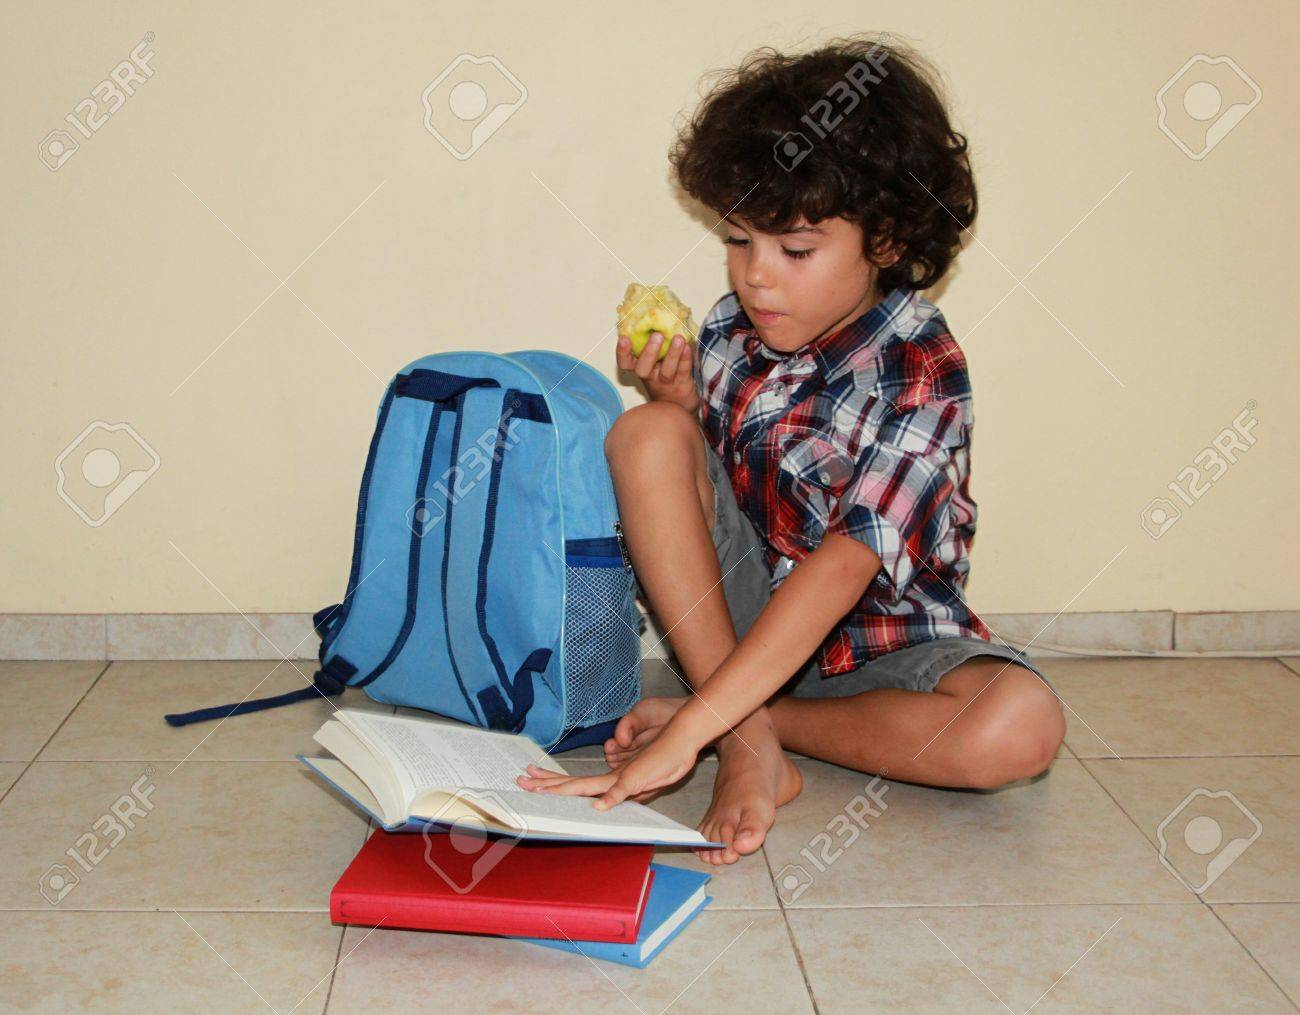 A beautiful child with apple sitting on the floor and reading a book surrounded with blue bag and books Stock Photo - 14920116